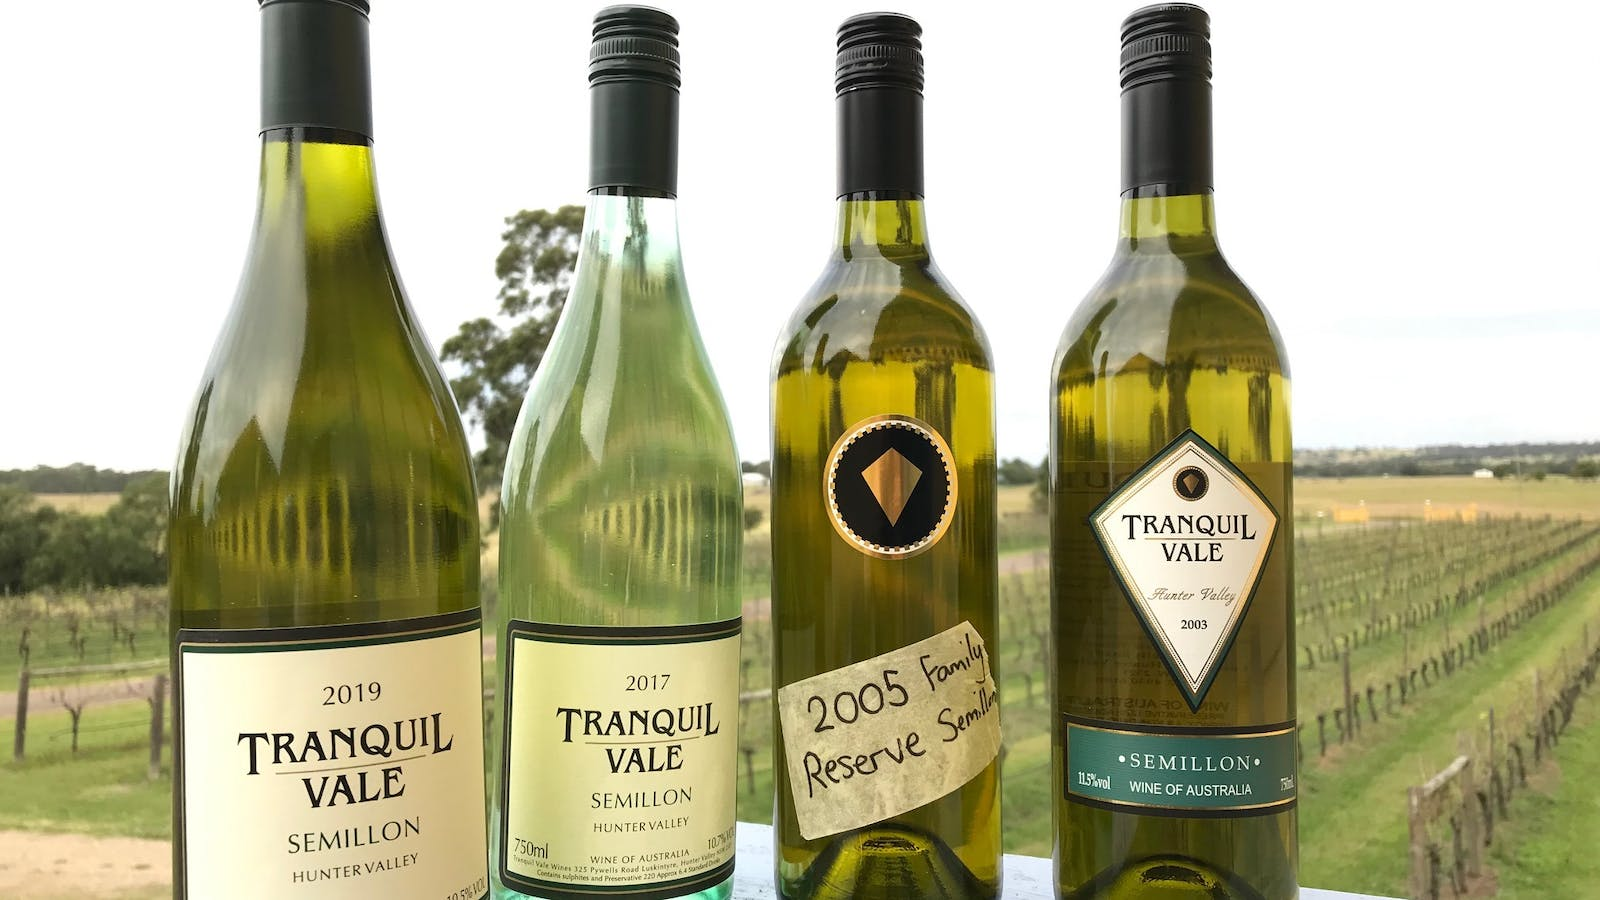 Semillons 2020 to 2003